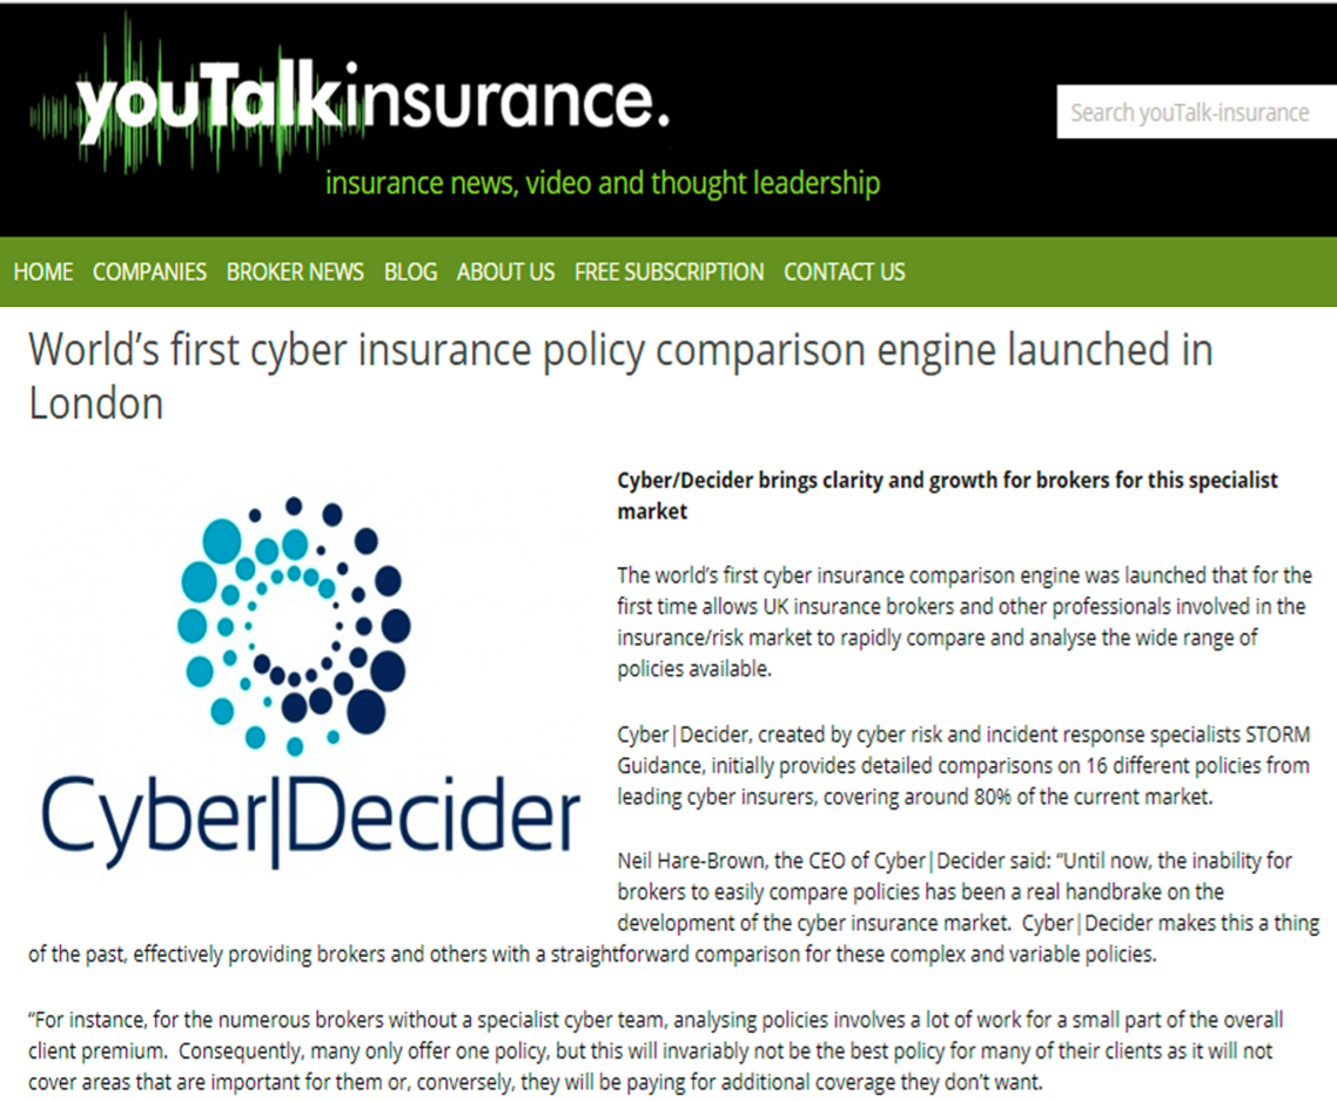 YouTalkInsurance - Cyber|Decider